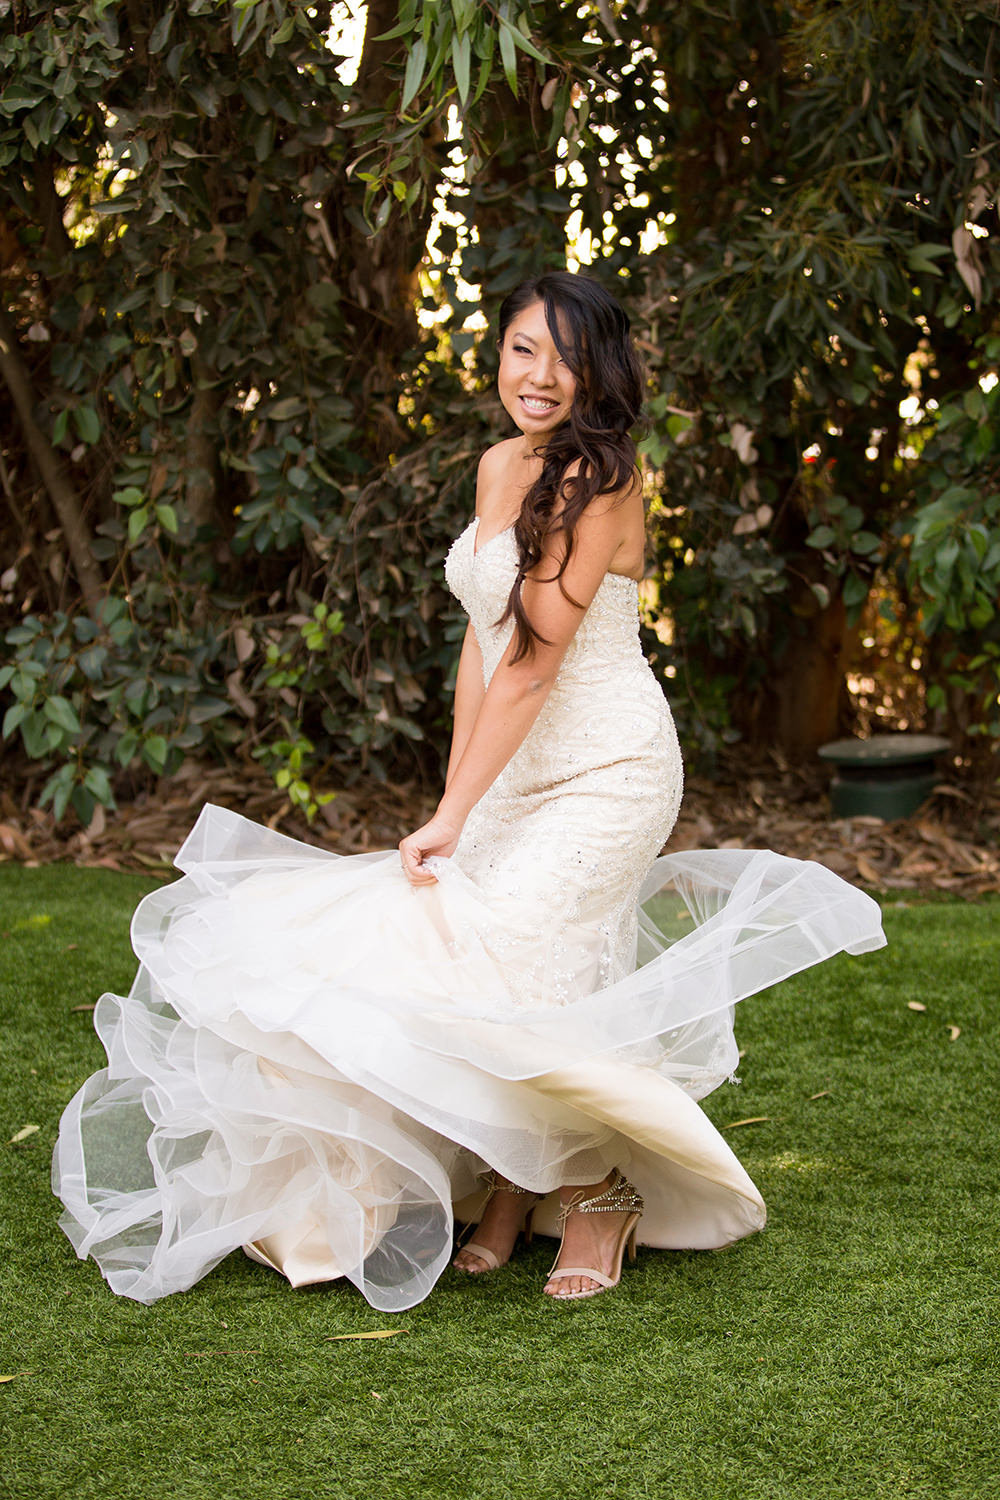 Bride spins her dress out | Bridal portrait ideas